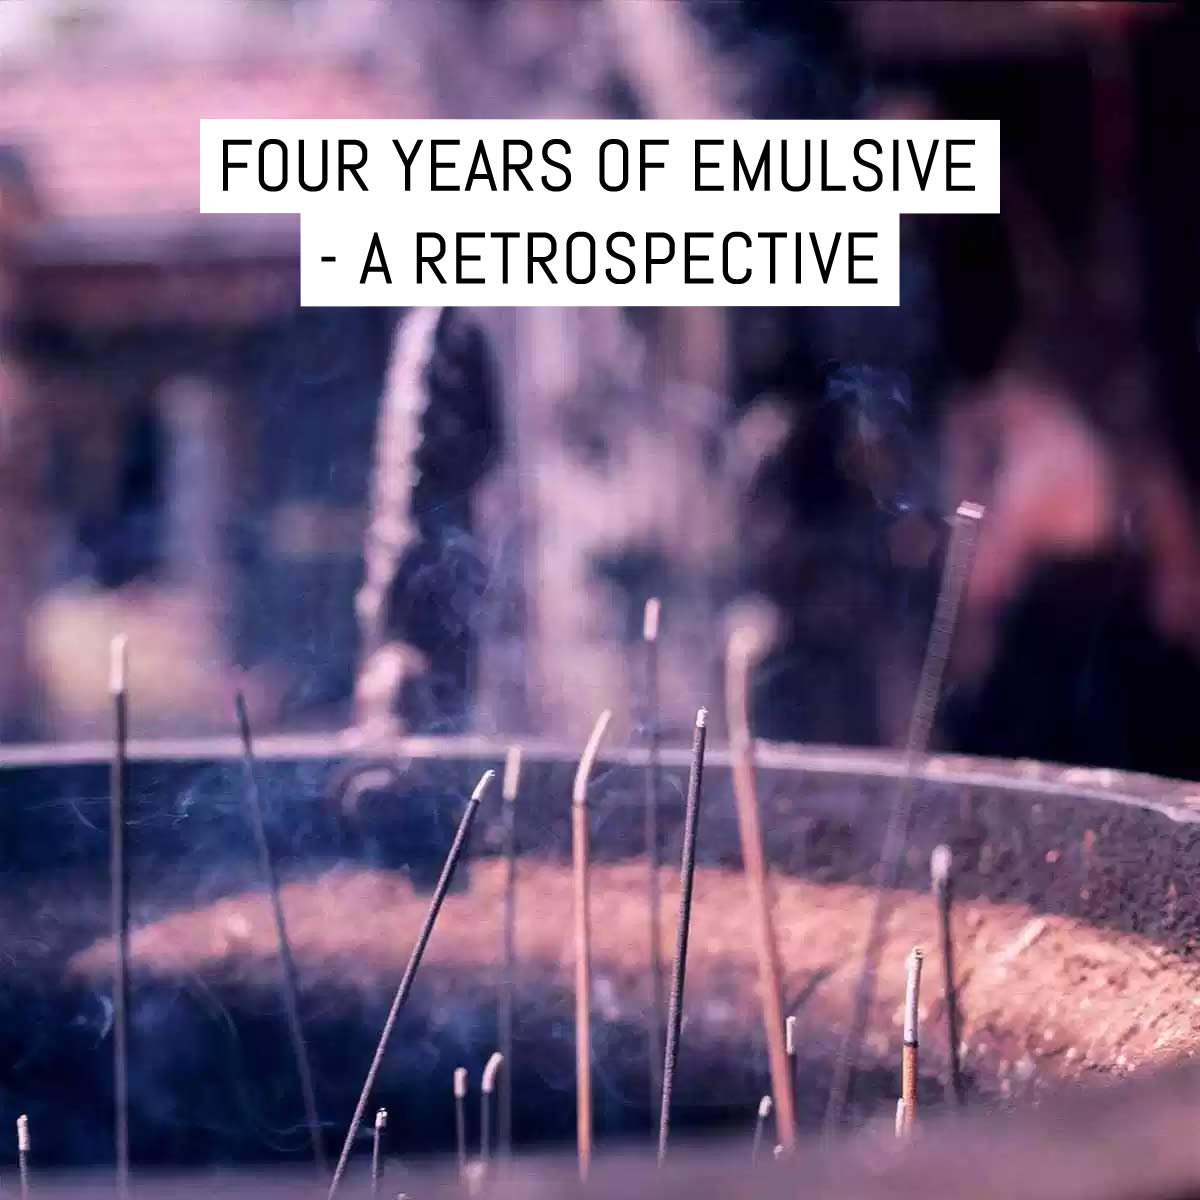 Cover: Four years of EMULSIVE - a retrospective